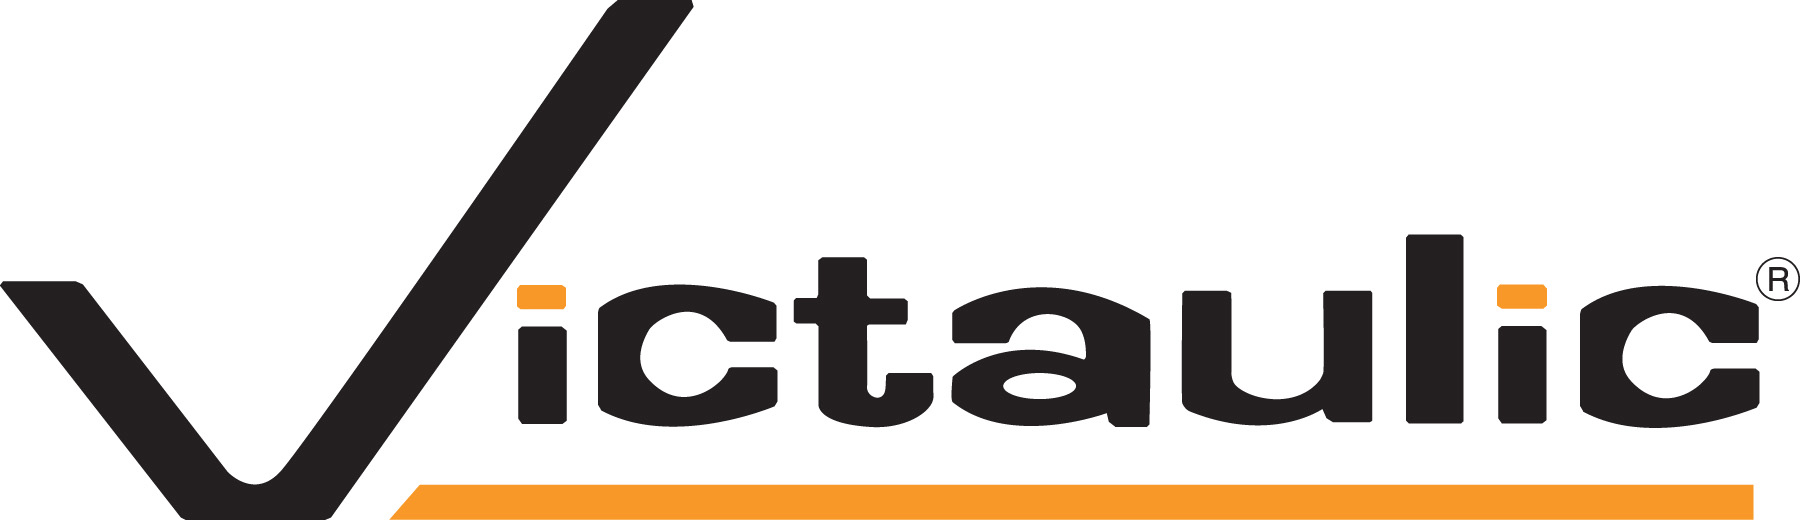 Victaulic Orange Logo